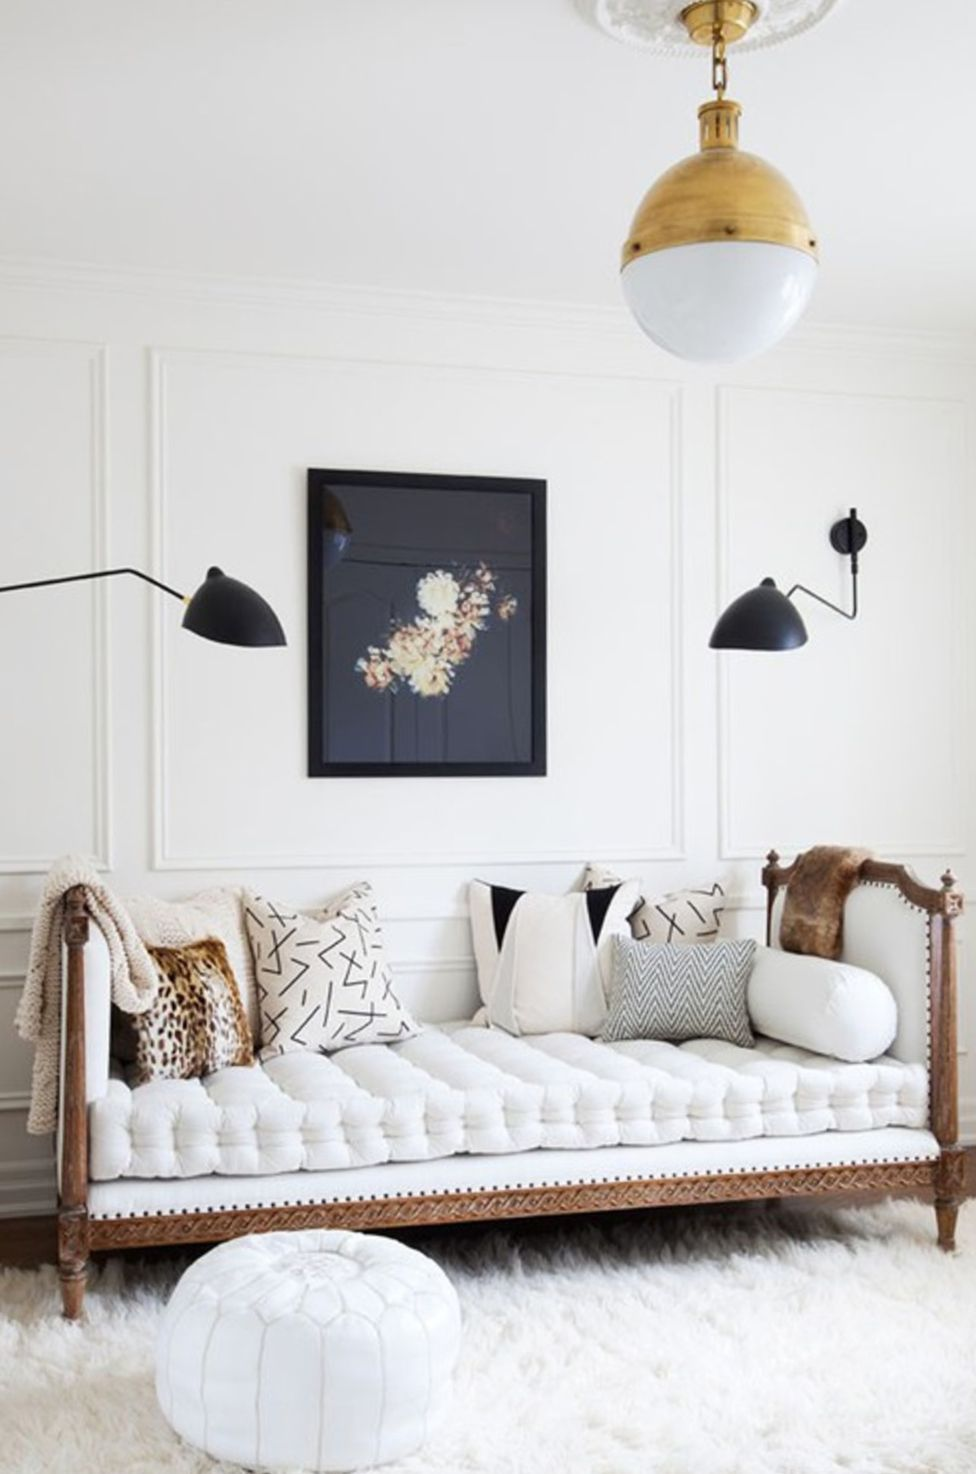 Roundup :: Daybeds in Every Style & Price | Pinterest | Daybed ...